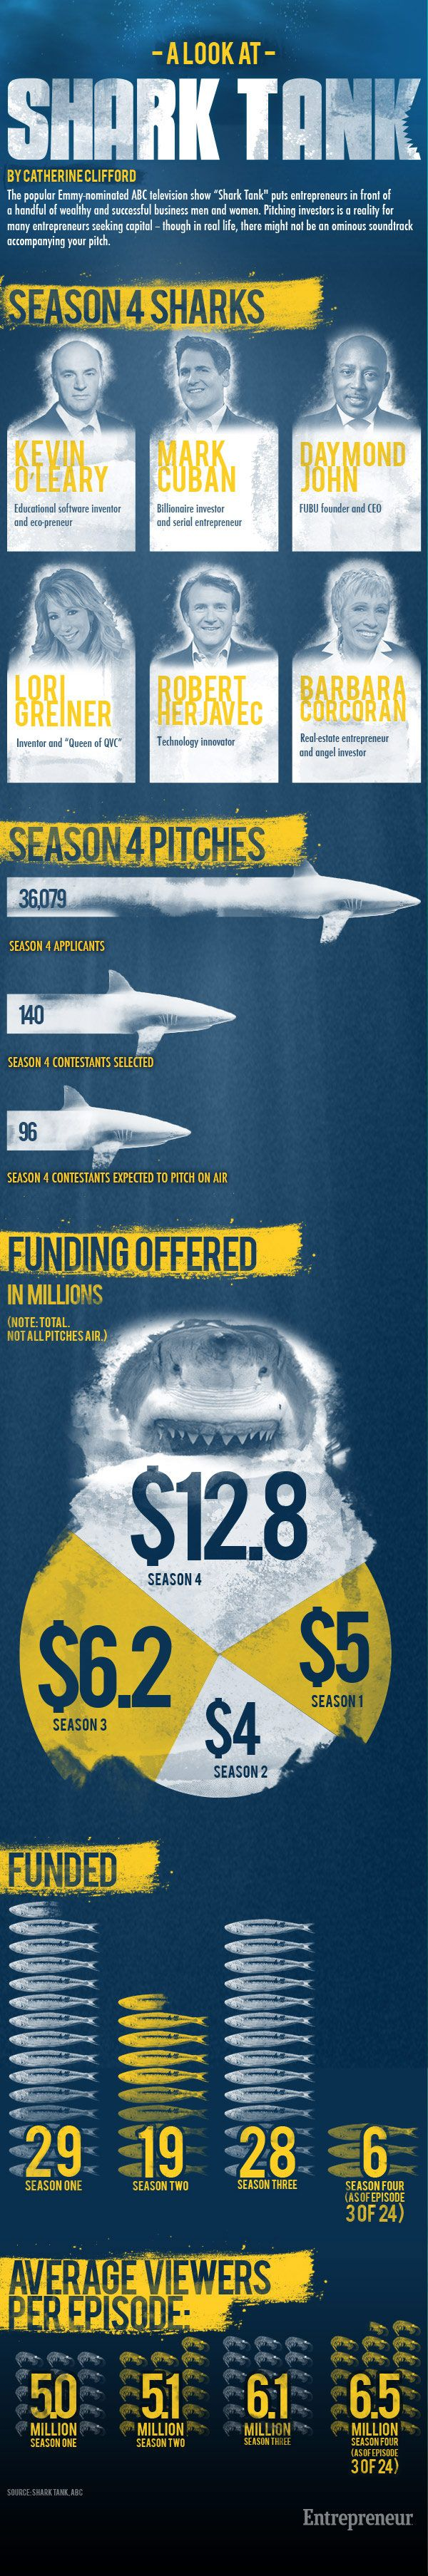 How Shark Tank is Popularizing Entrepreneurship    http://blogs.payscale.com/salary_report_kris_cowan/2012/12/how-shark-tank-is-popularizing-entrepreneurship-infographic.html